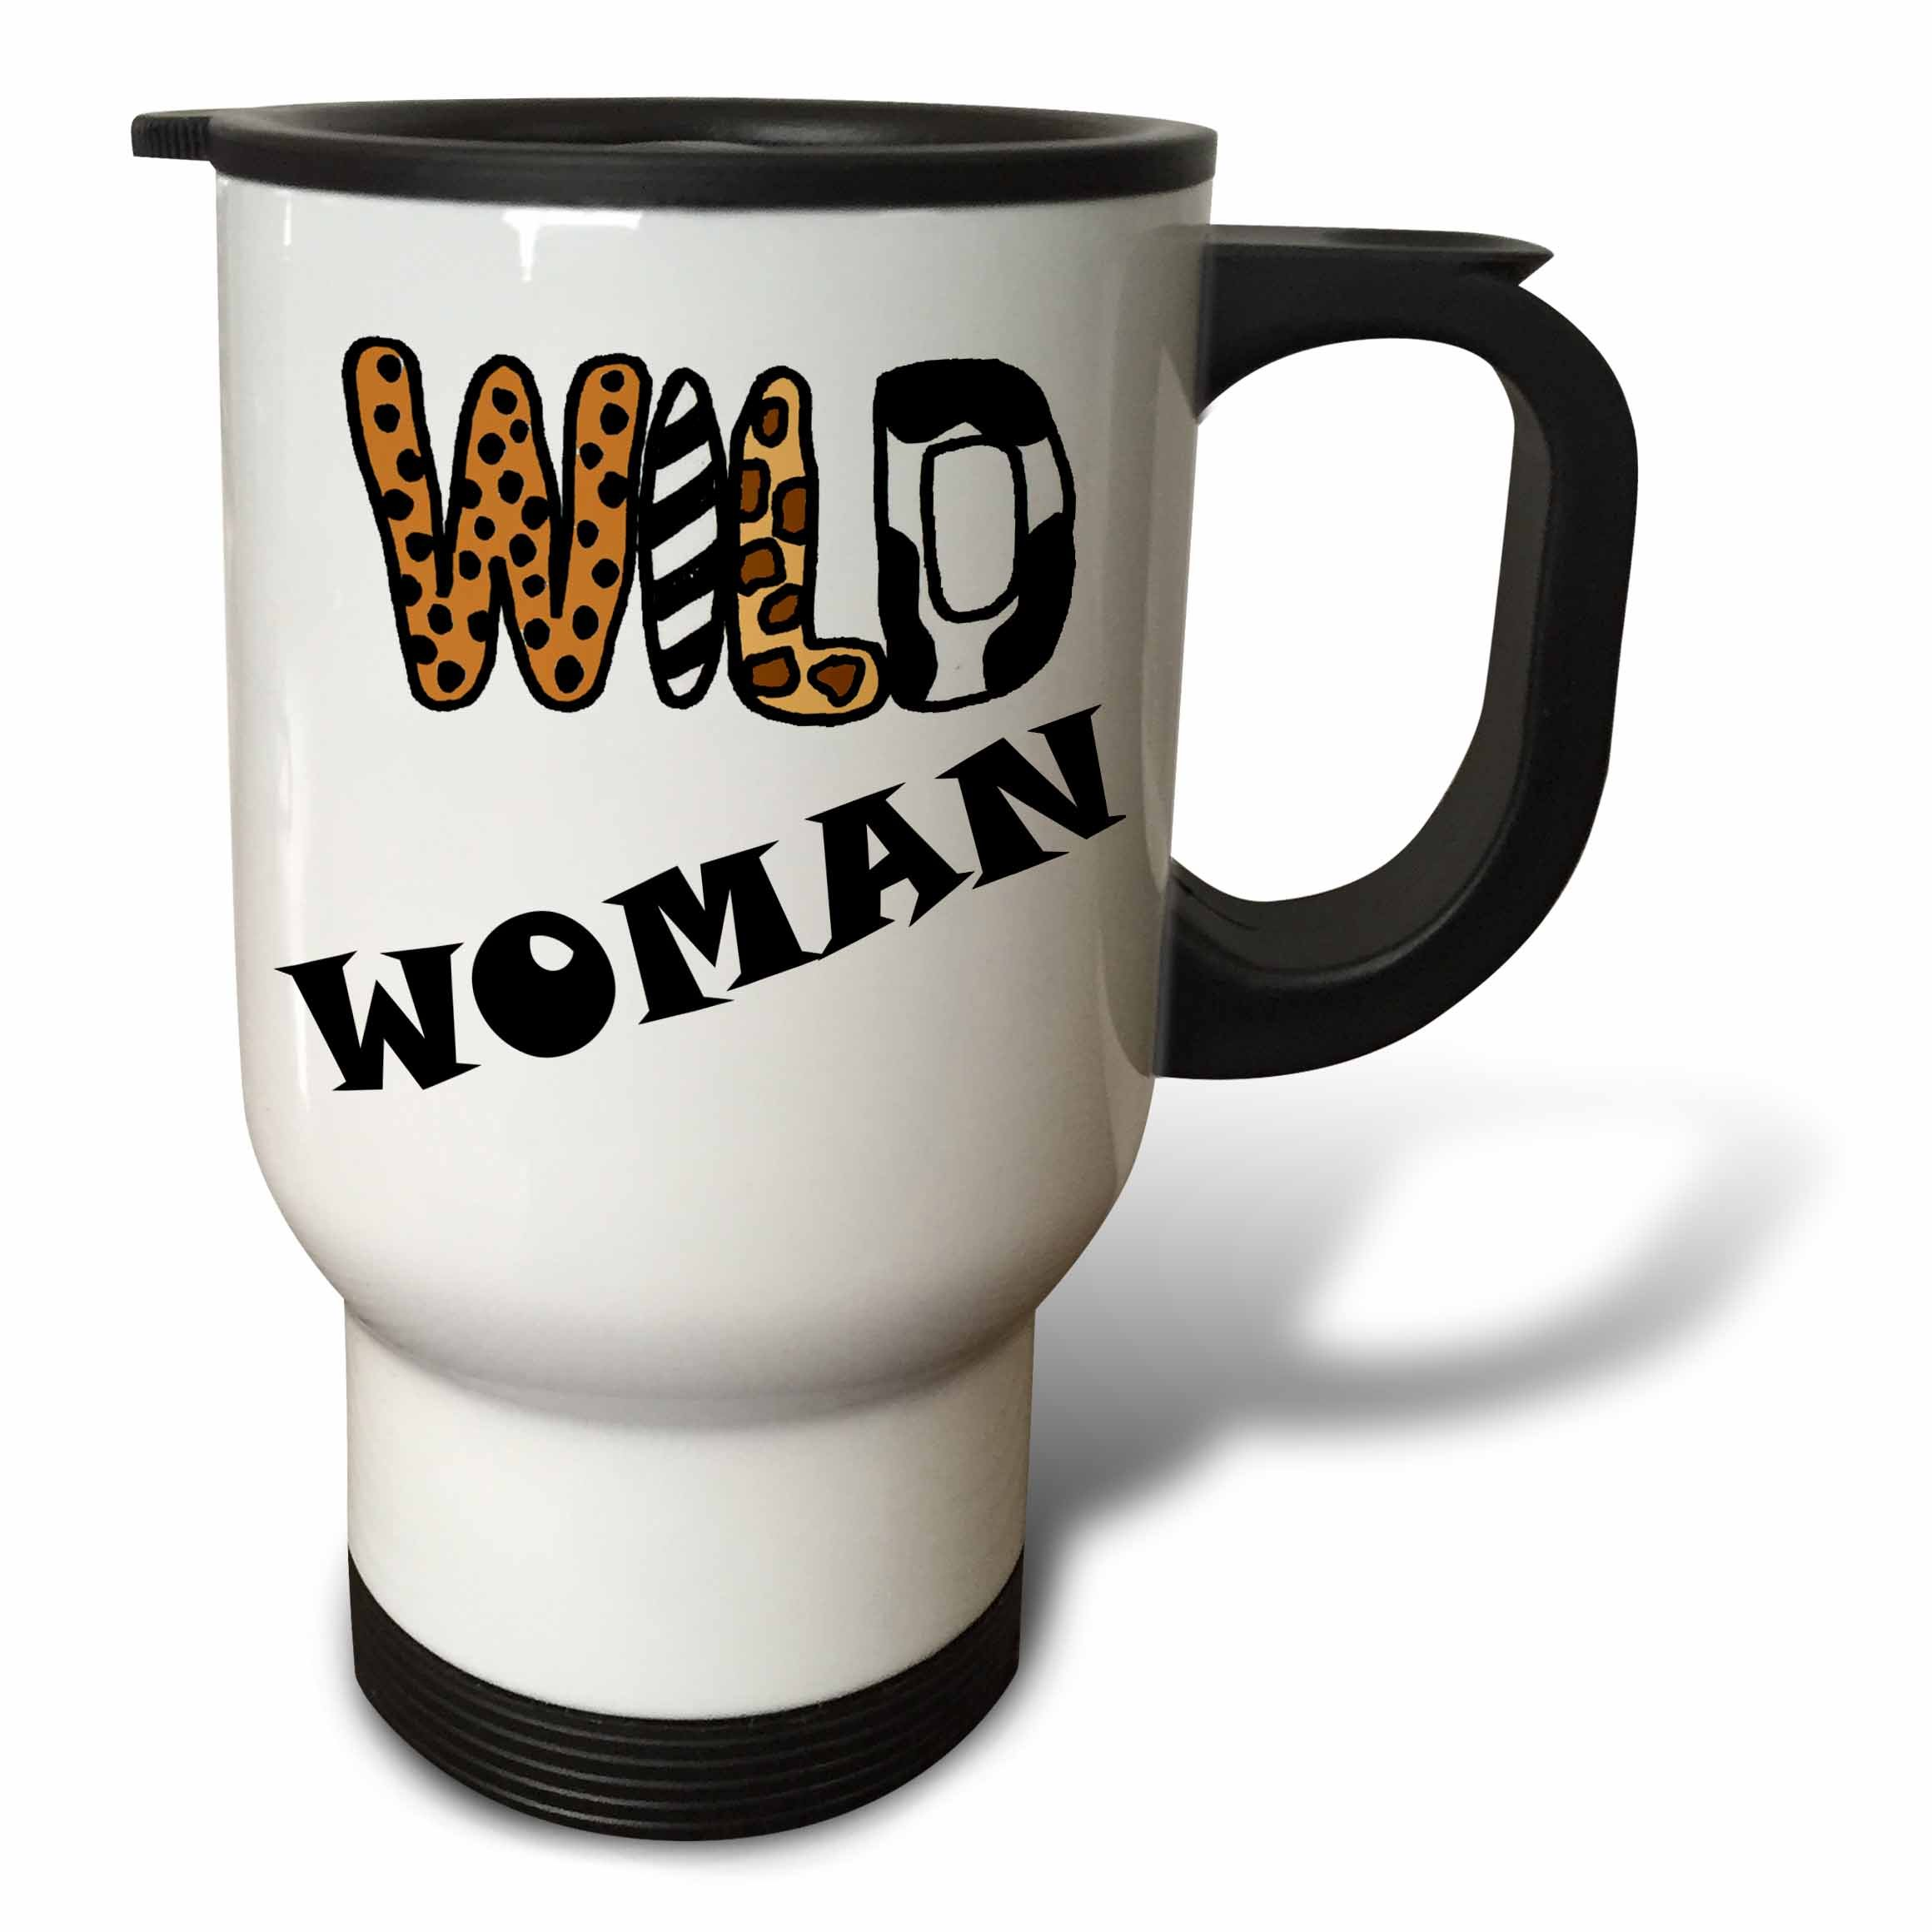 3dRose All Smiles Art Funny - Cute Funny Wild Woman Animal Print Letters Design - 14oz Stainless Steel Travel Mug (tm_281372_1)